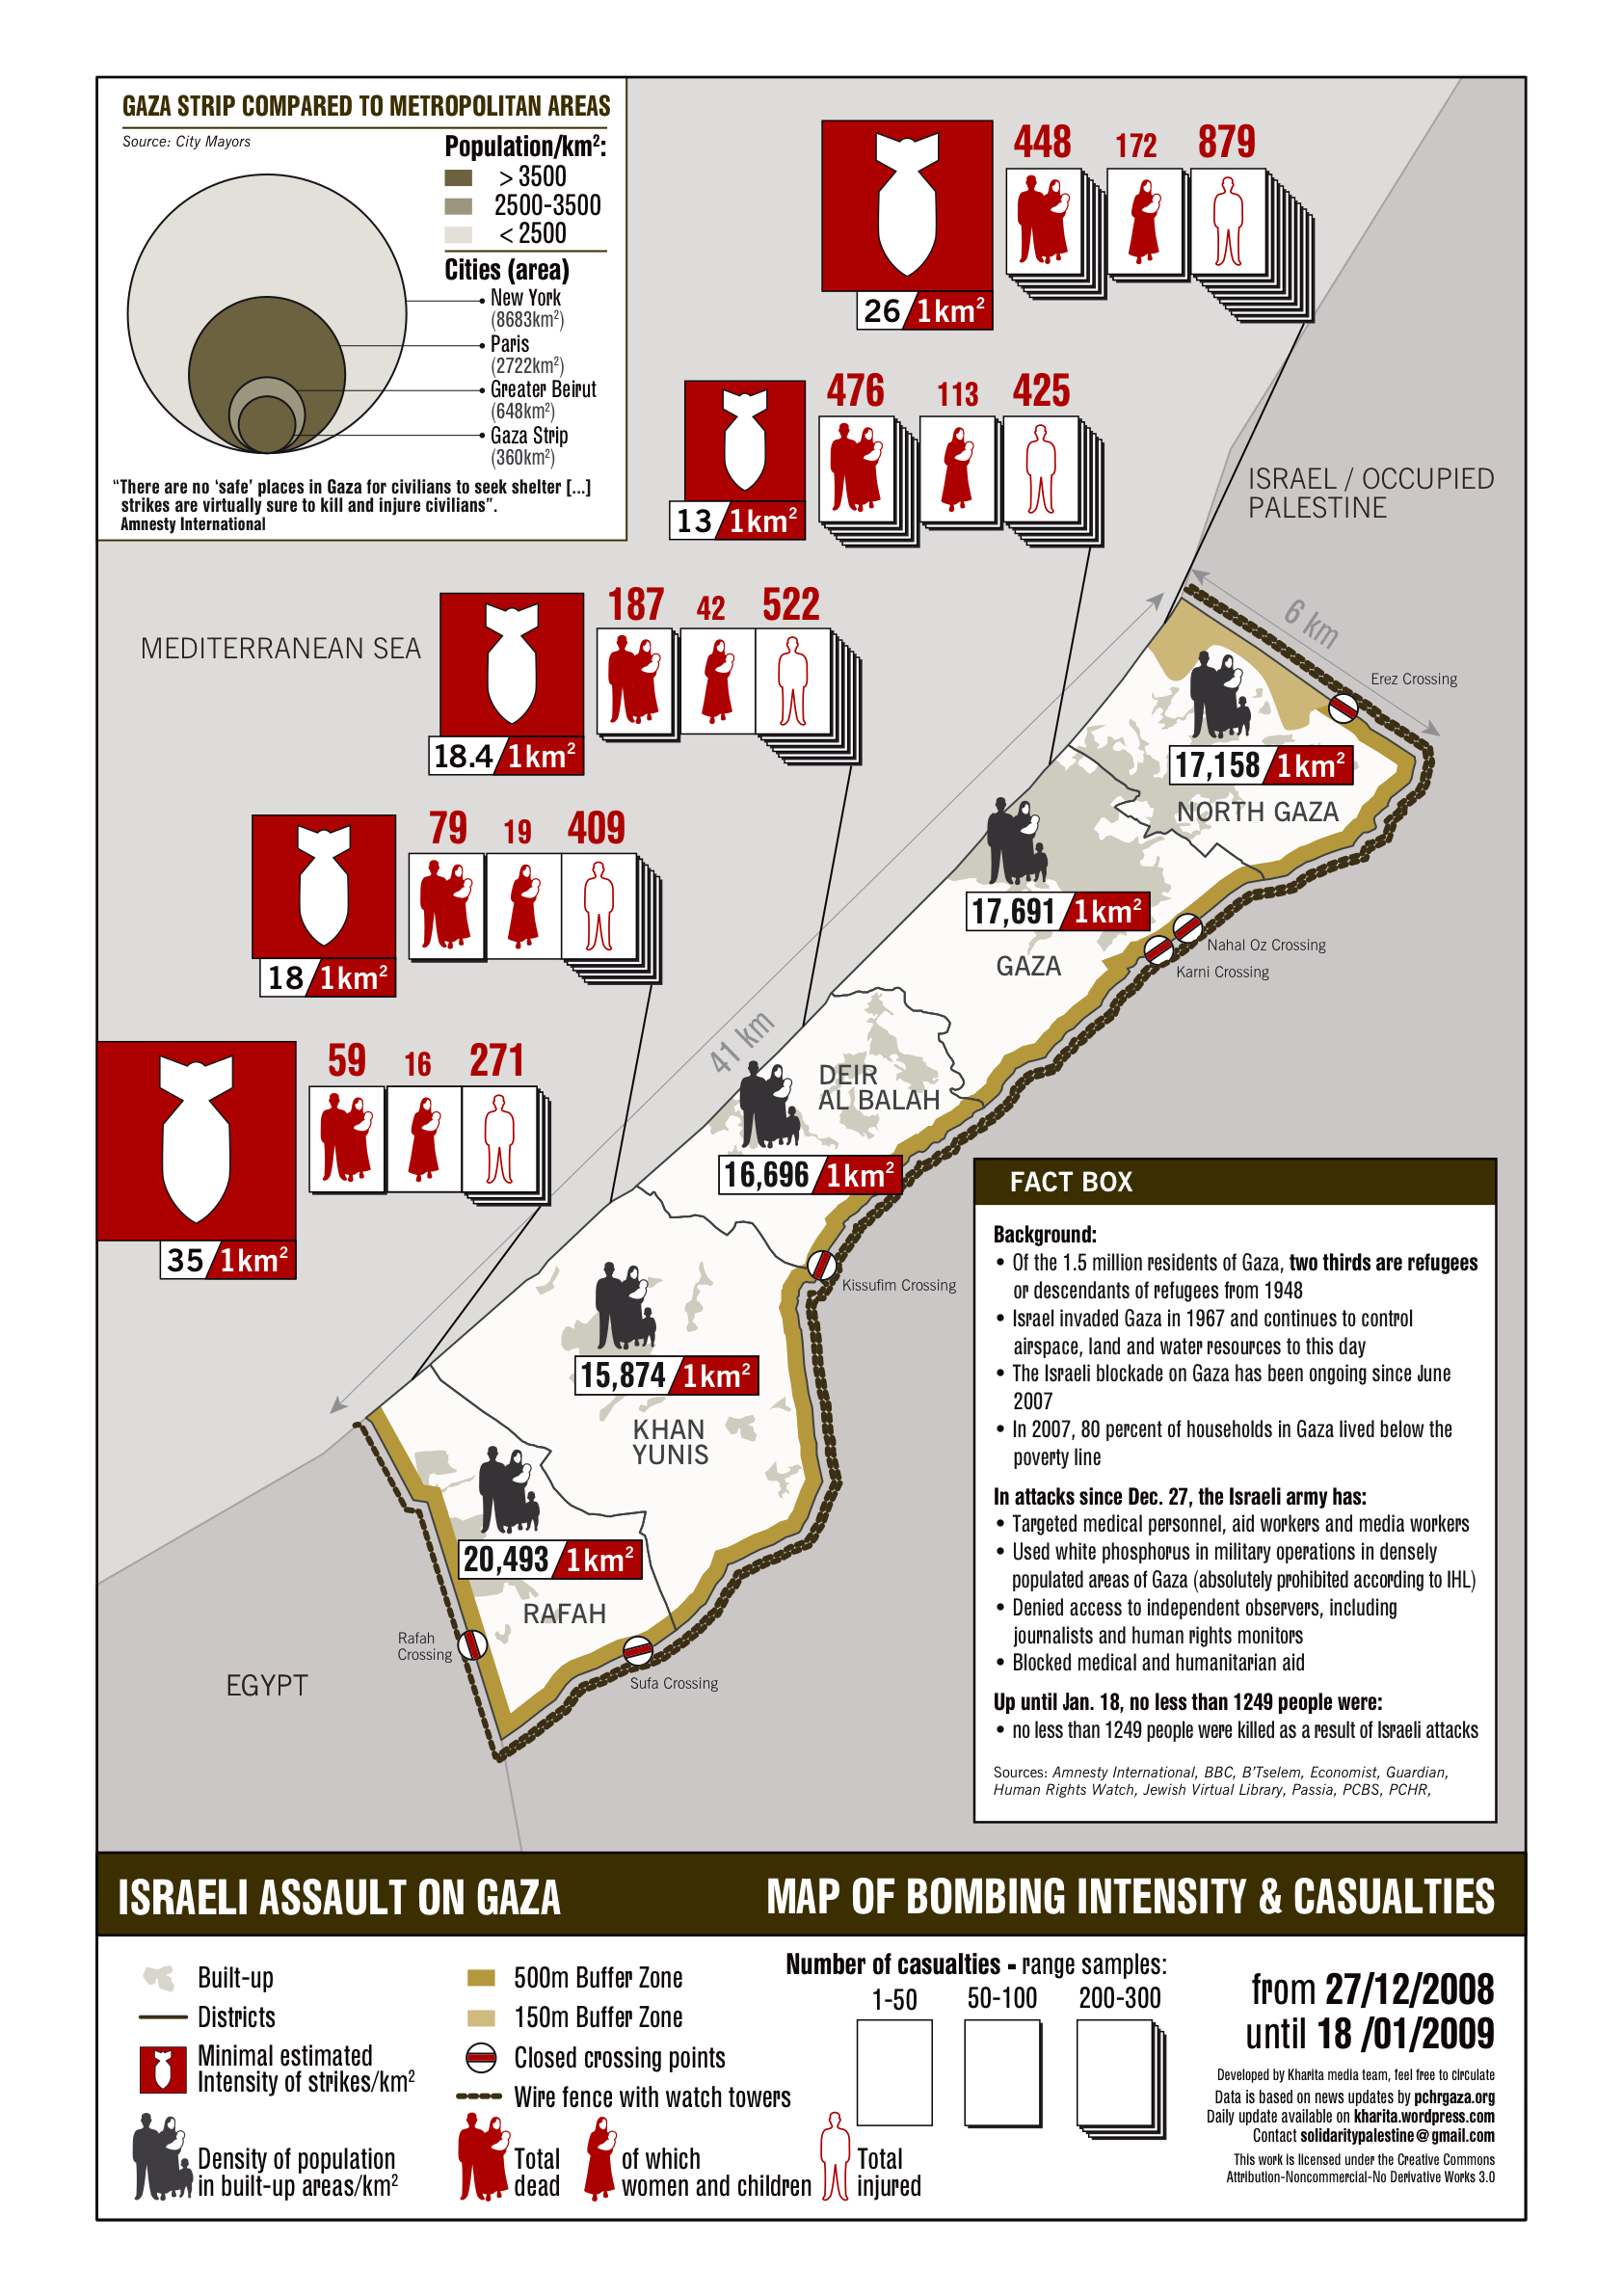 Gaza Map of Bombing Intensity & Casualties, Dec 27-Jan 18, 2009